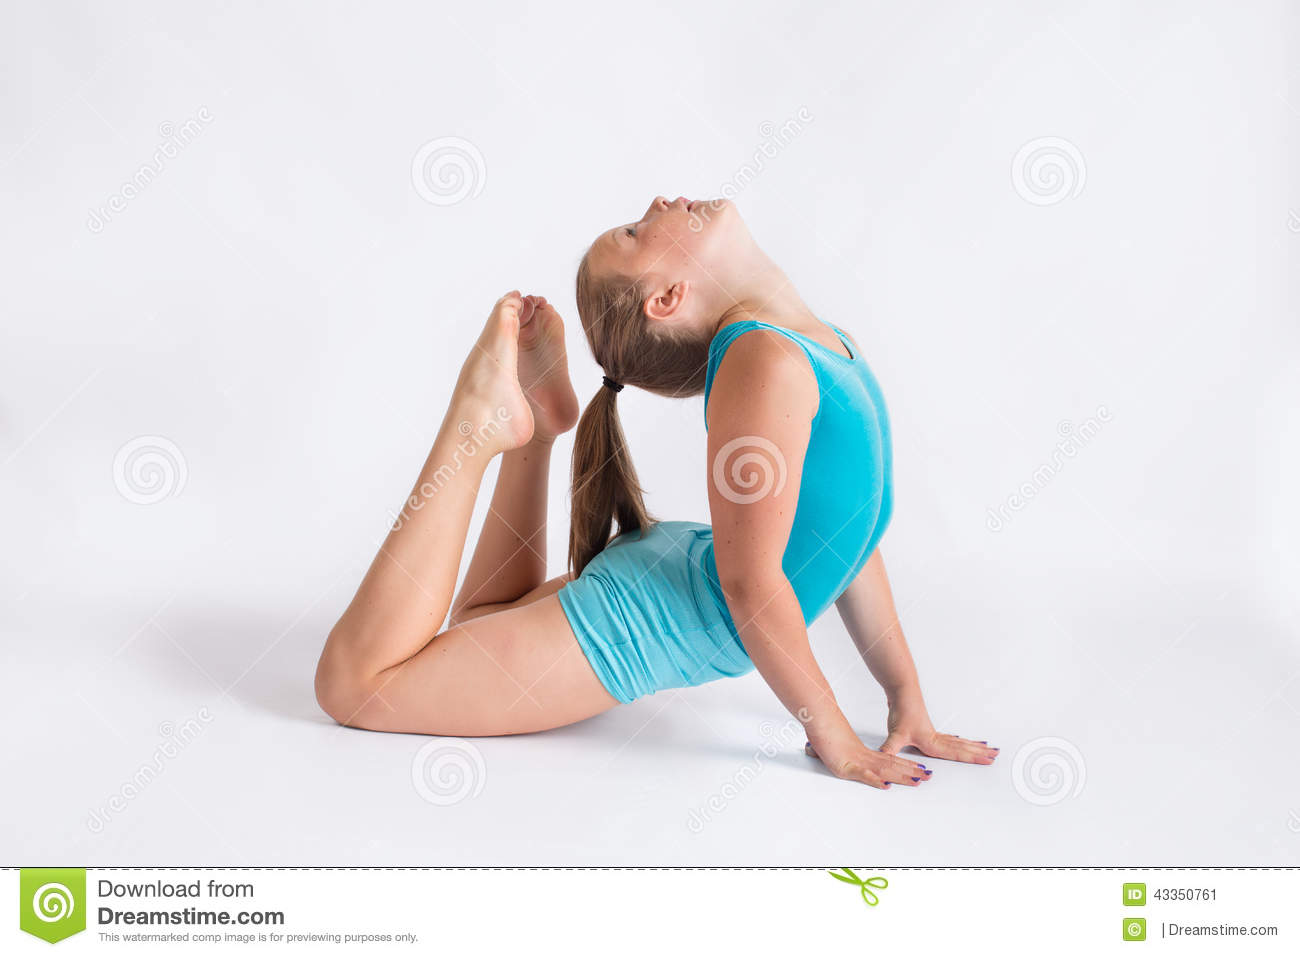 Tween Girl Doing Yoga Pose Stock Photo - Image 43350761-6575